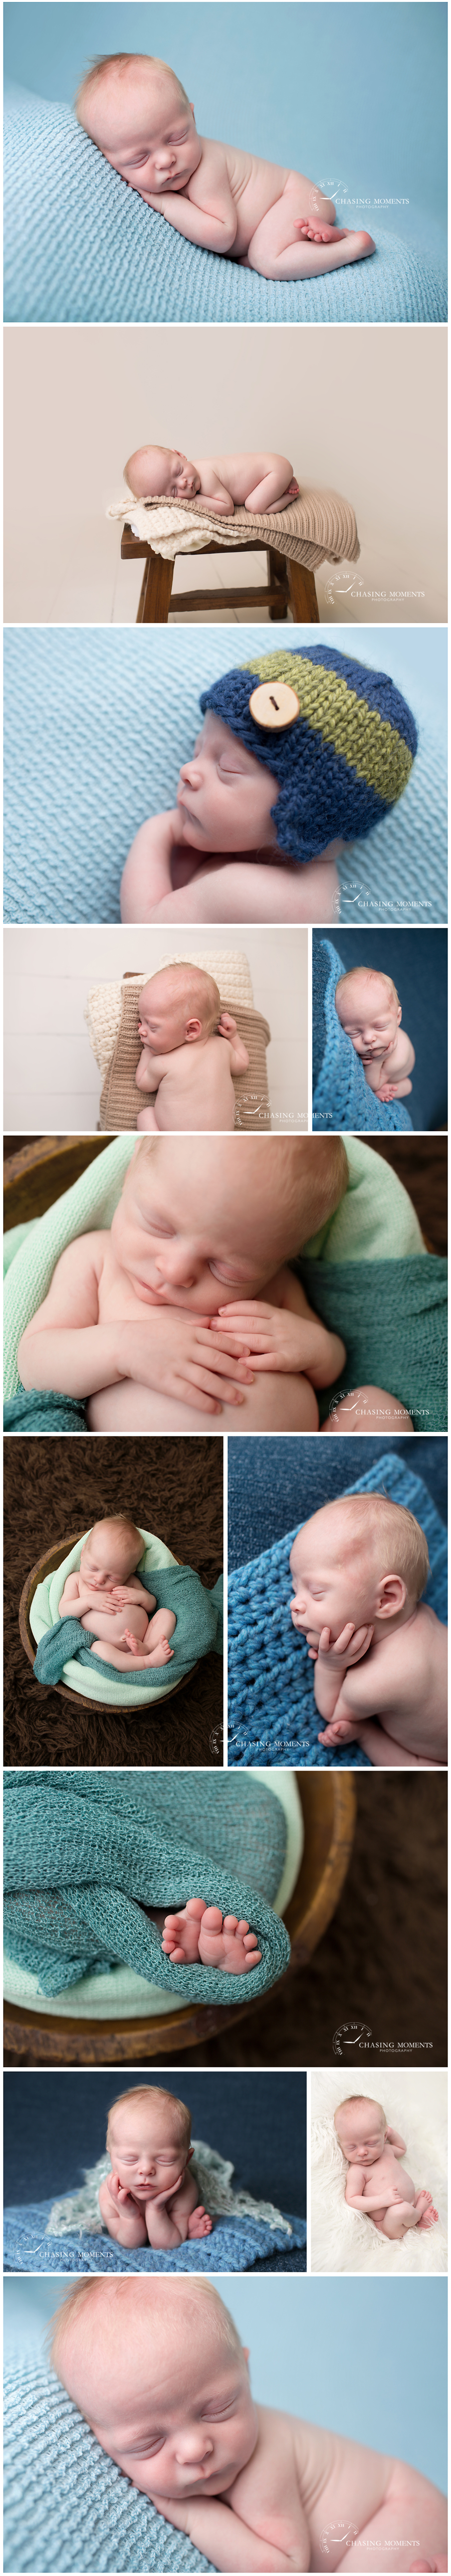 reston newborn photographer_web